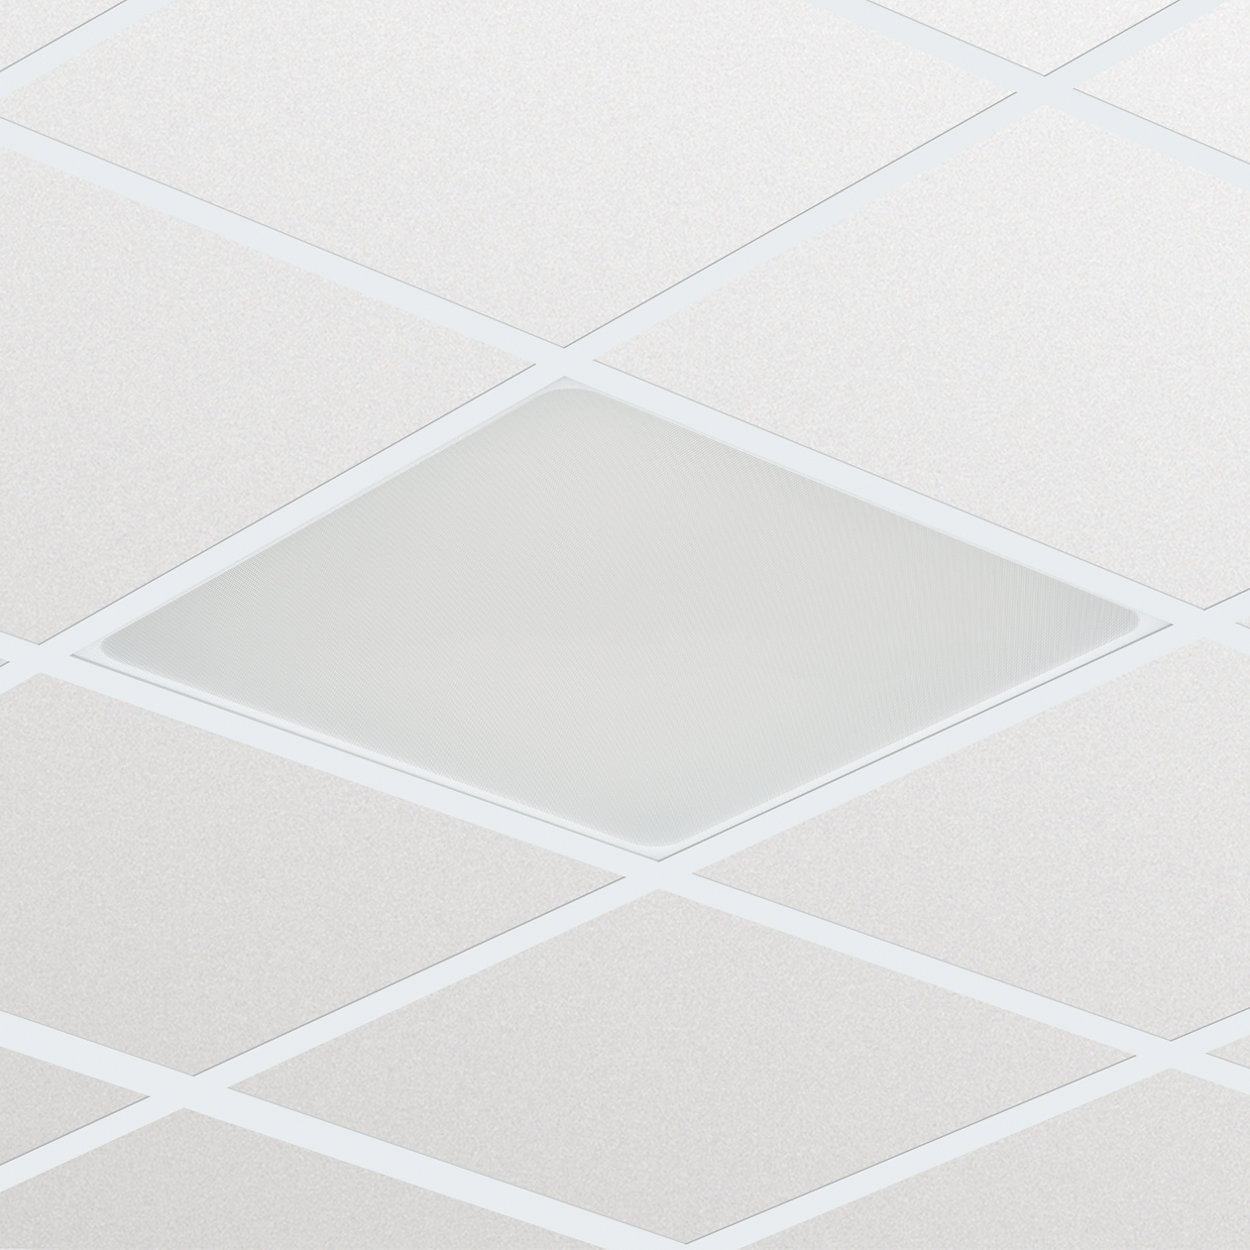 SmartBalance Tunable White recessed − supporting a general feeling of health and well-being